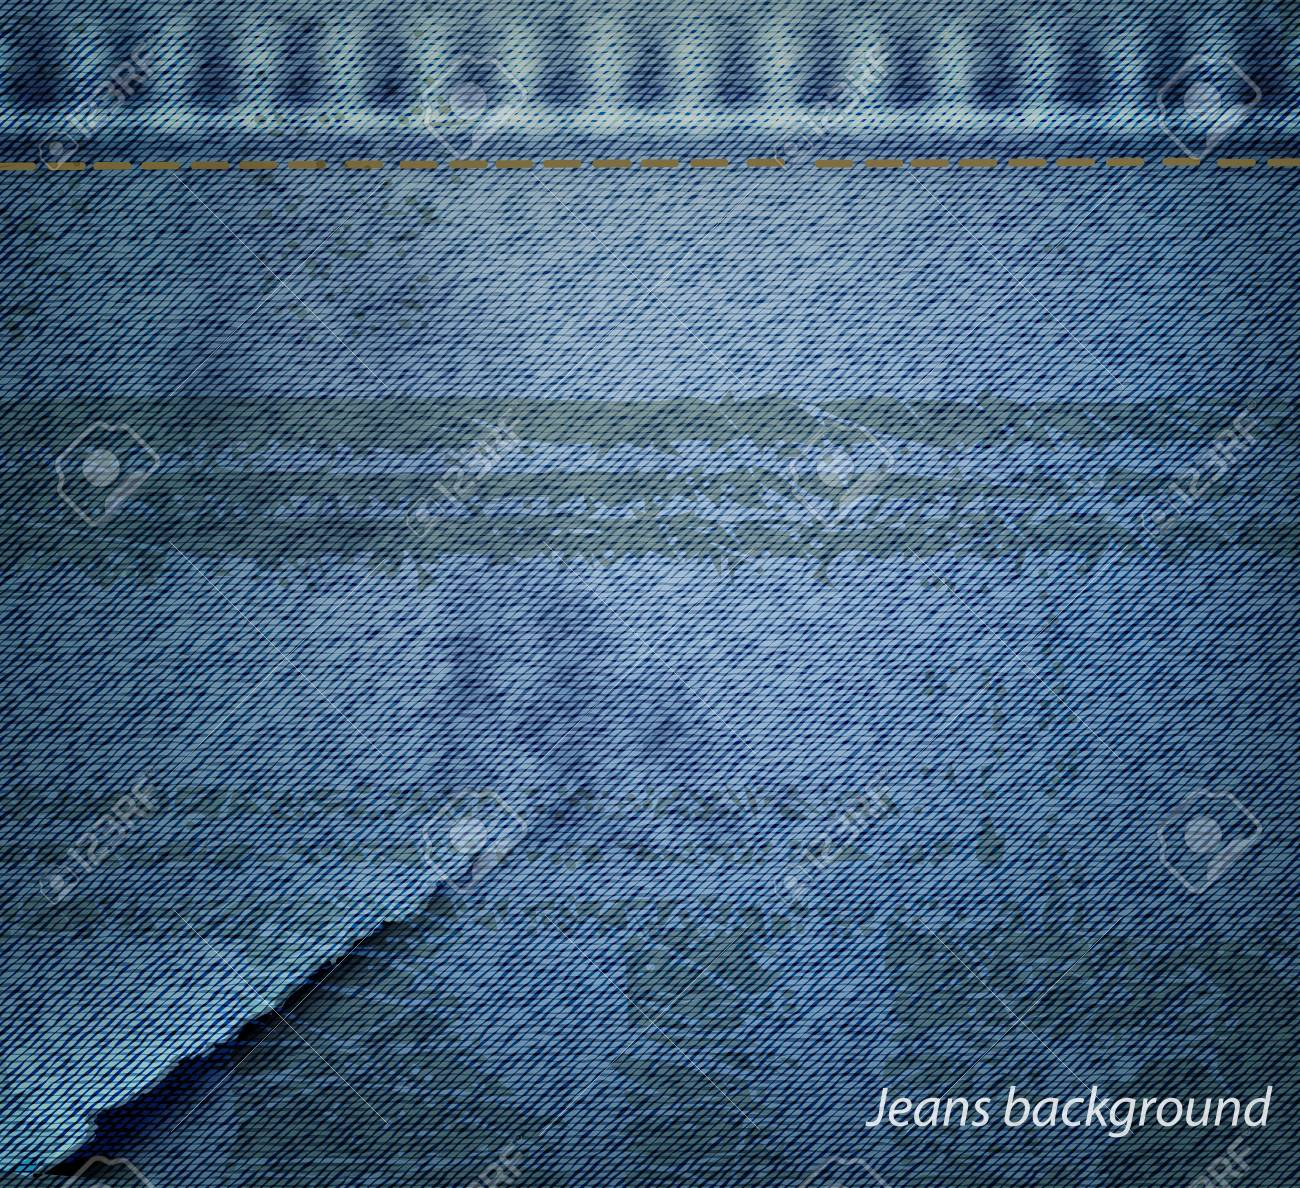 grunge jeans background. Stock Vector - 17558974